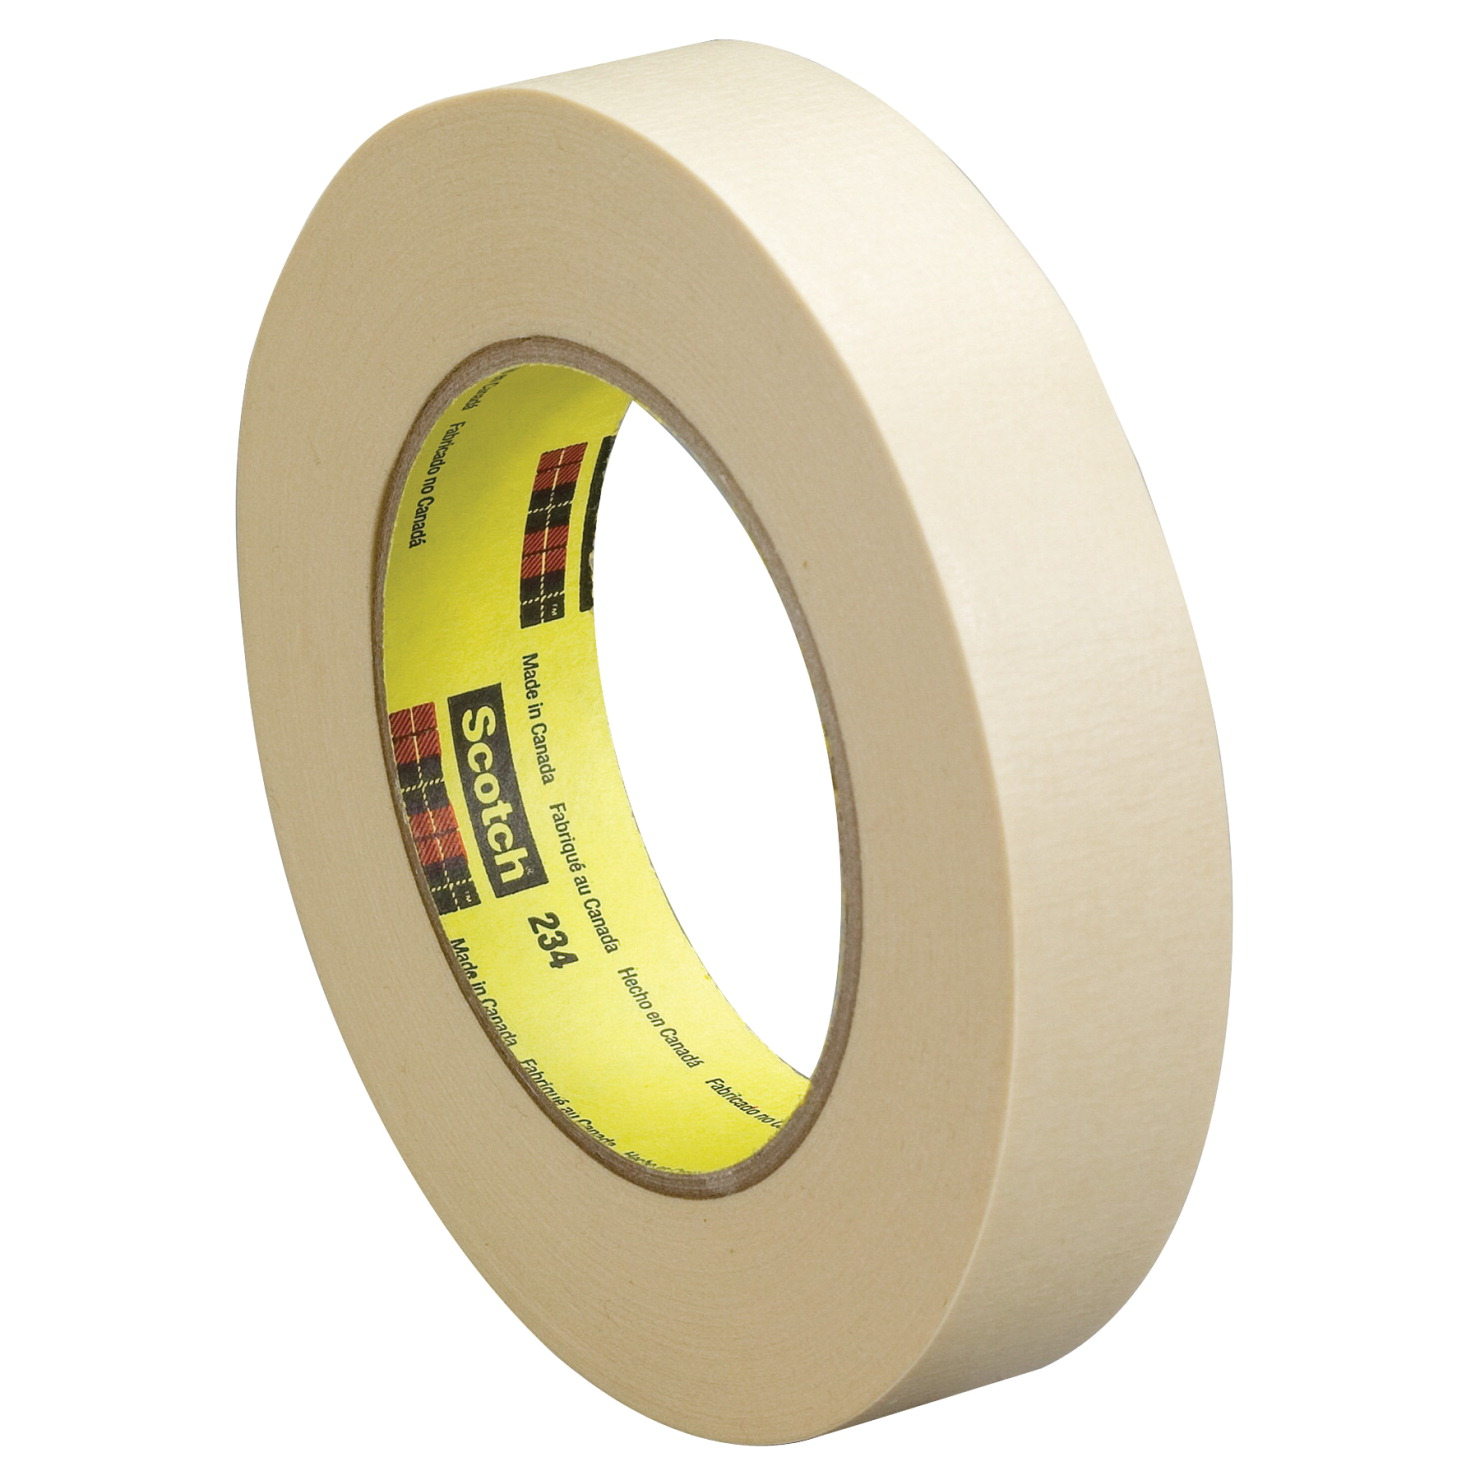 Scotch 234 General Purpose Masking Tape, 0.75 Inch x 60 Yards, Tan